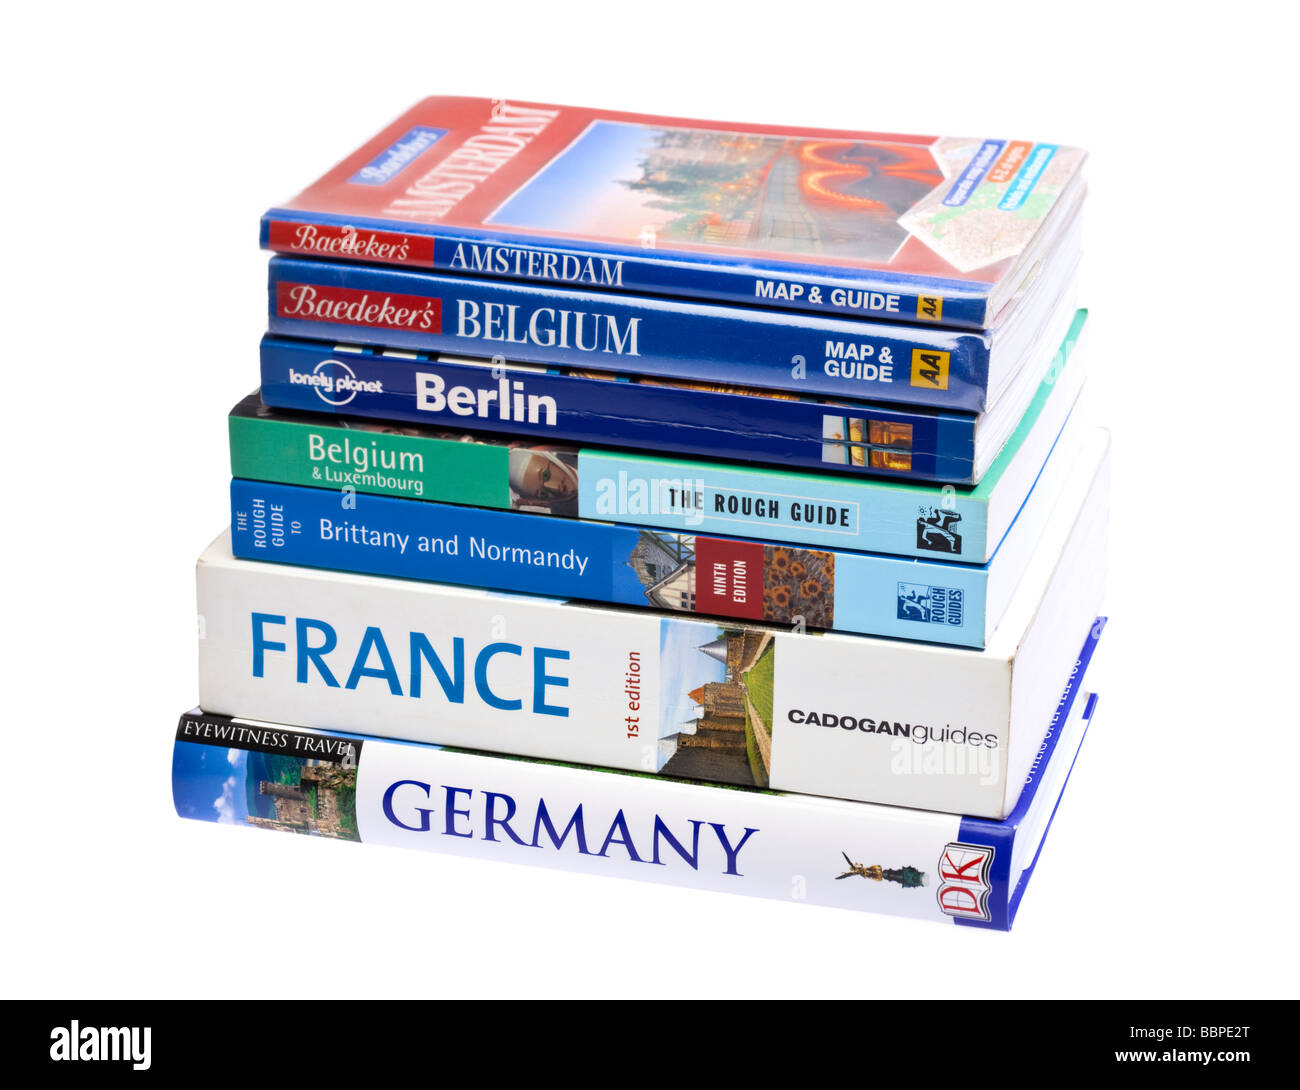 european travel guide books on white stock photo: 24465584 - alamy